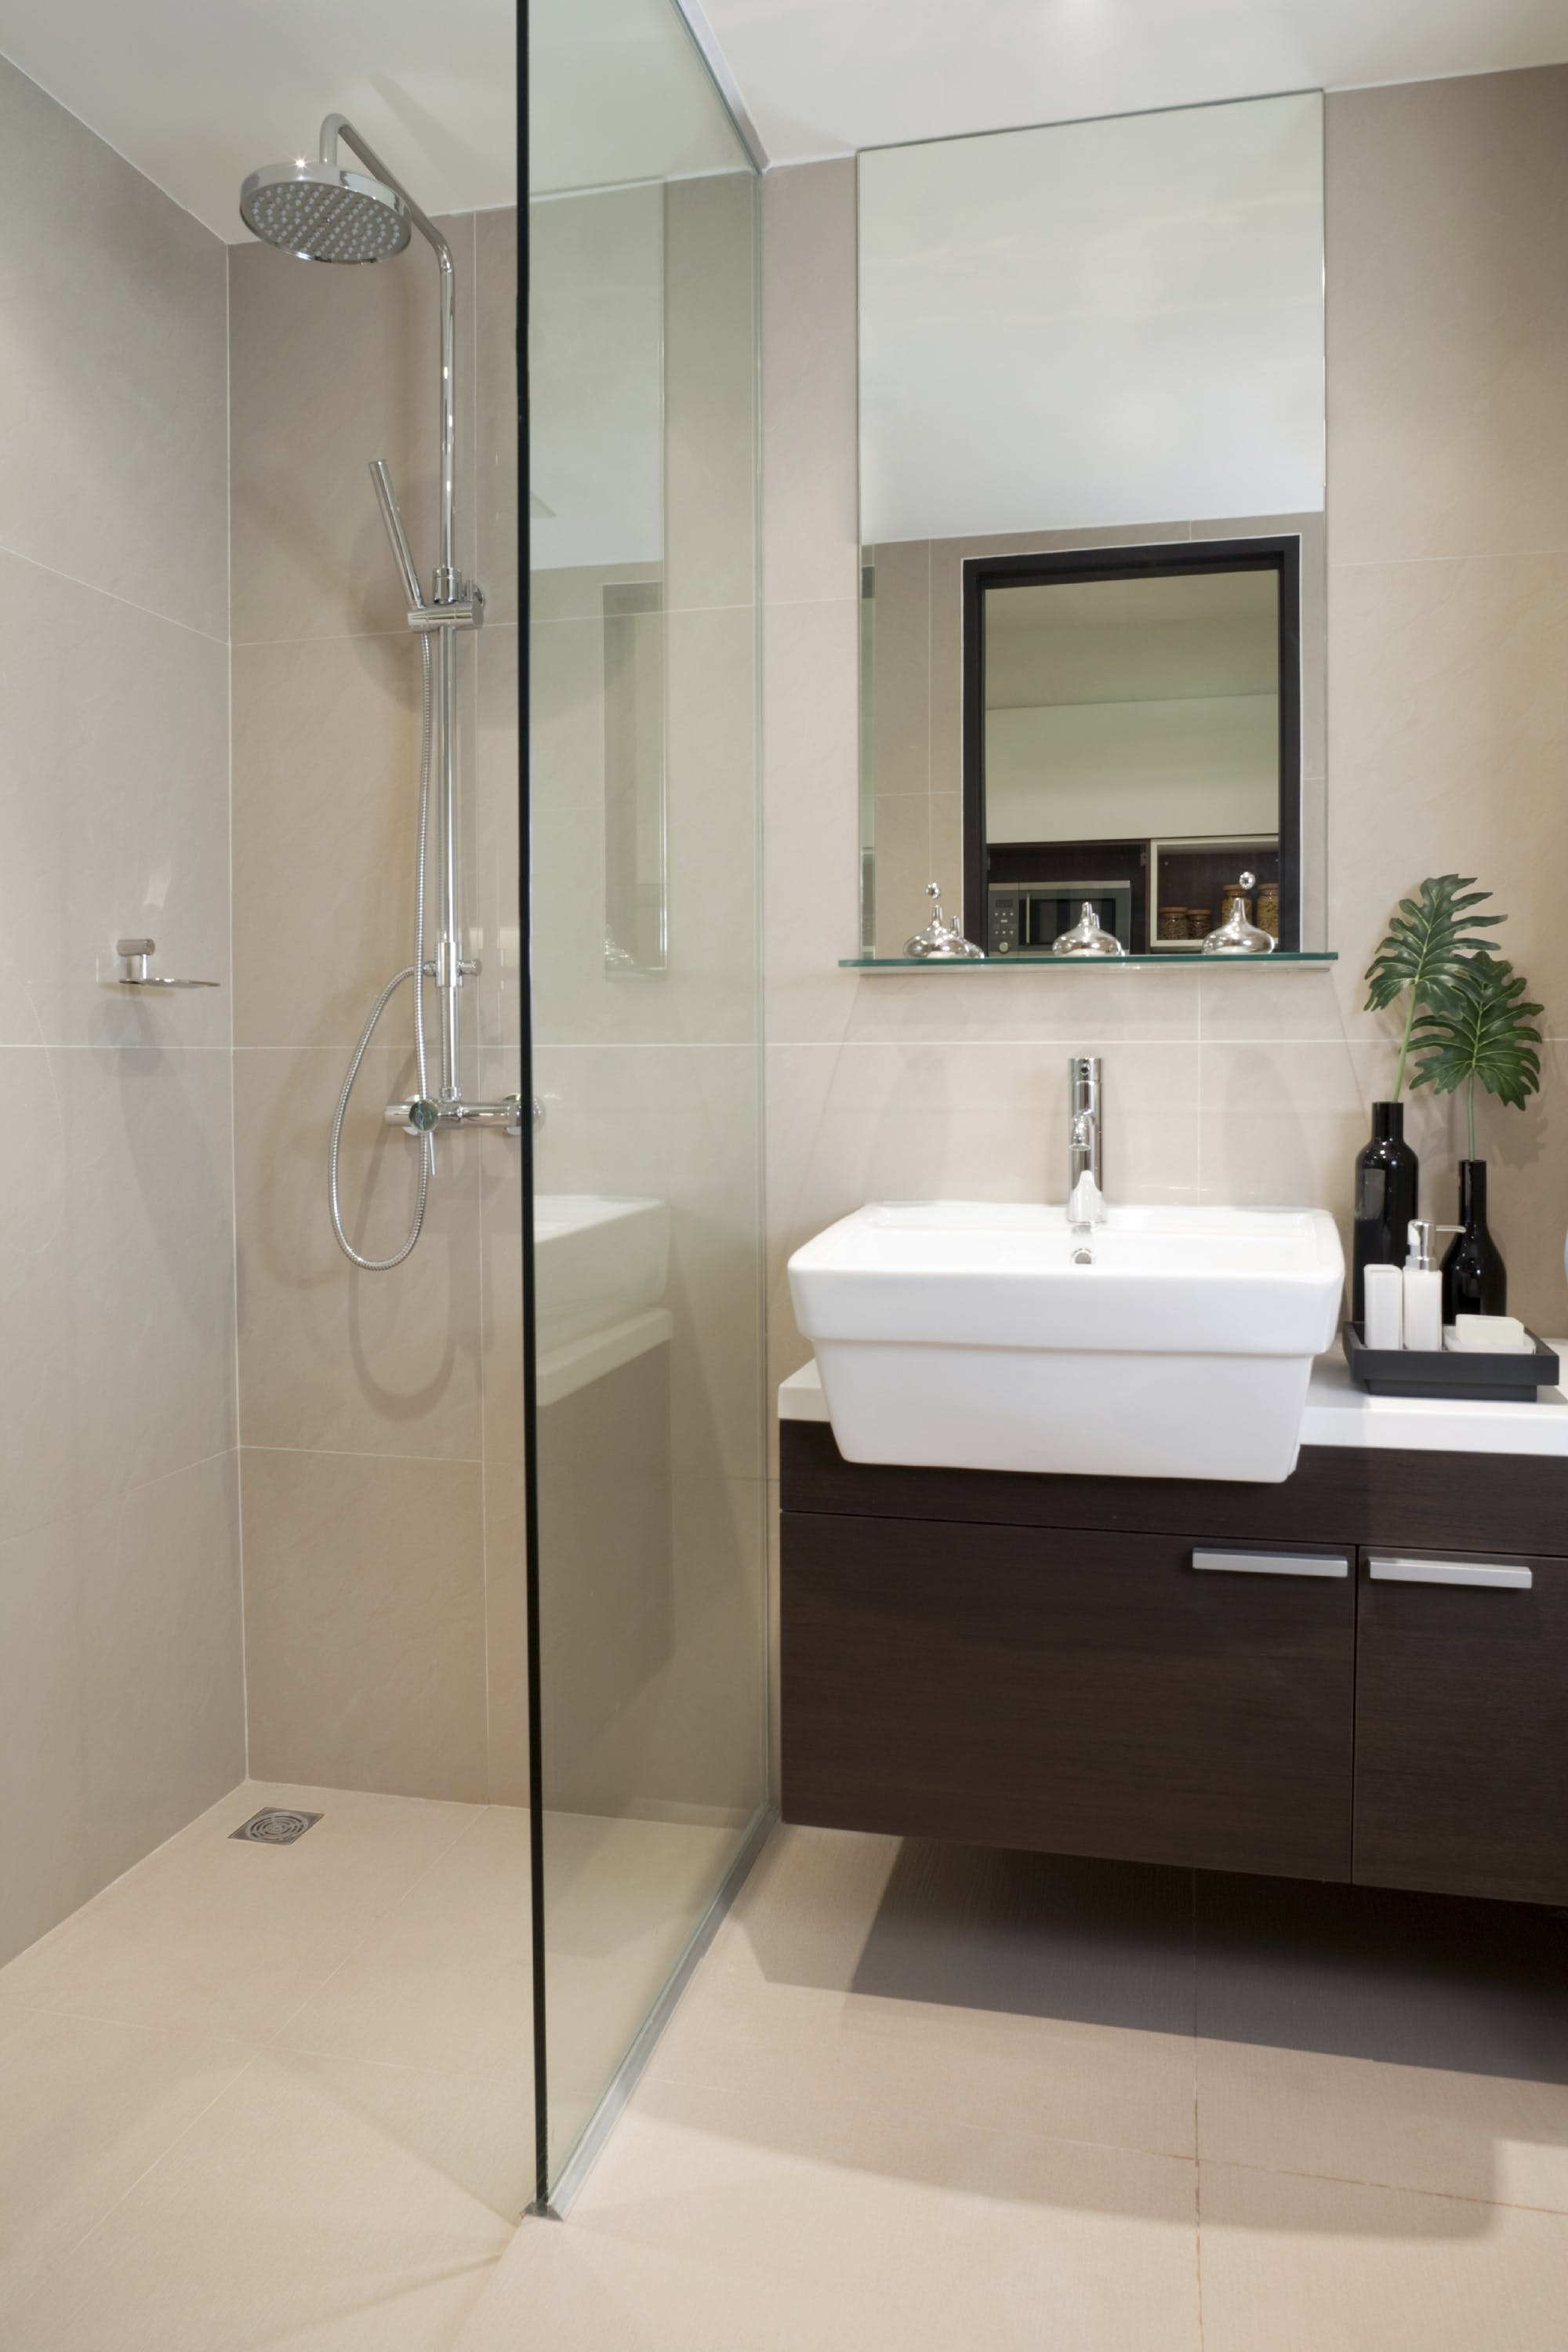 En-suite Bathroom Ideas | More Bathrooms